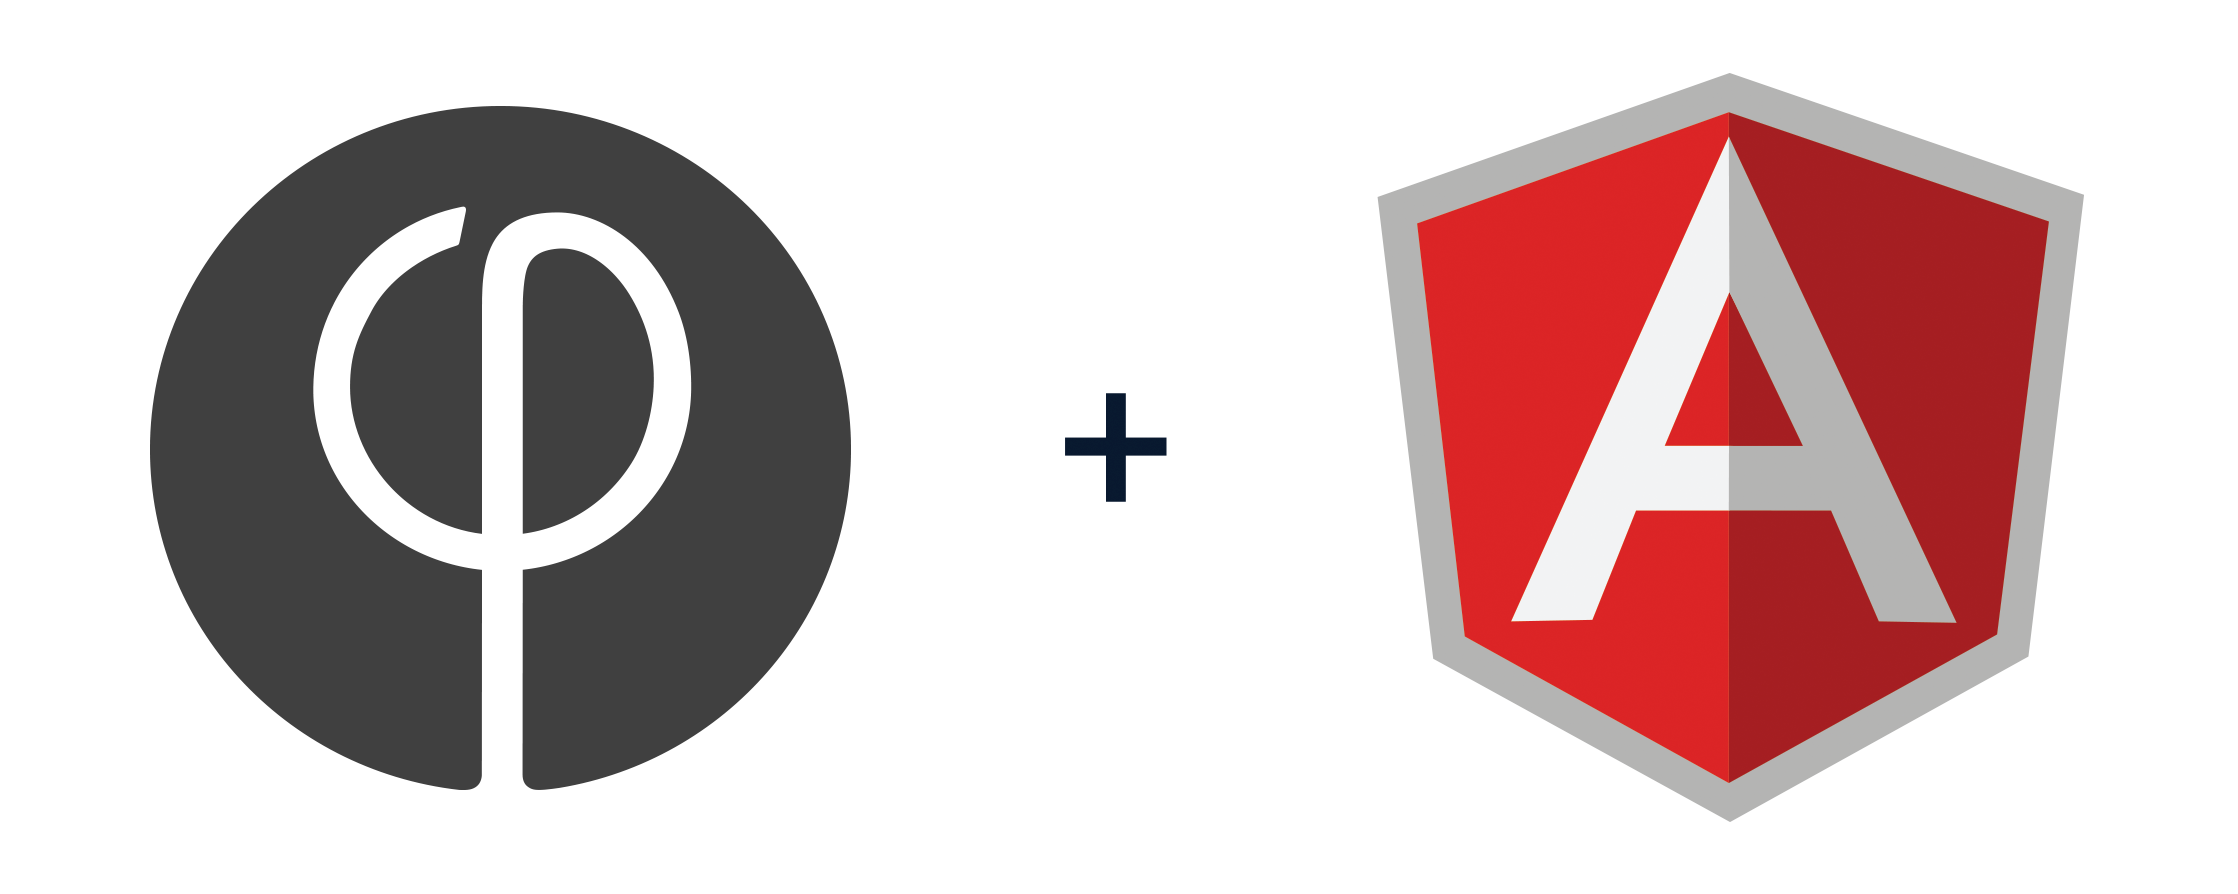 Famo.us+Angular